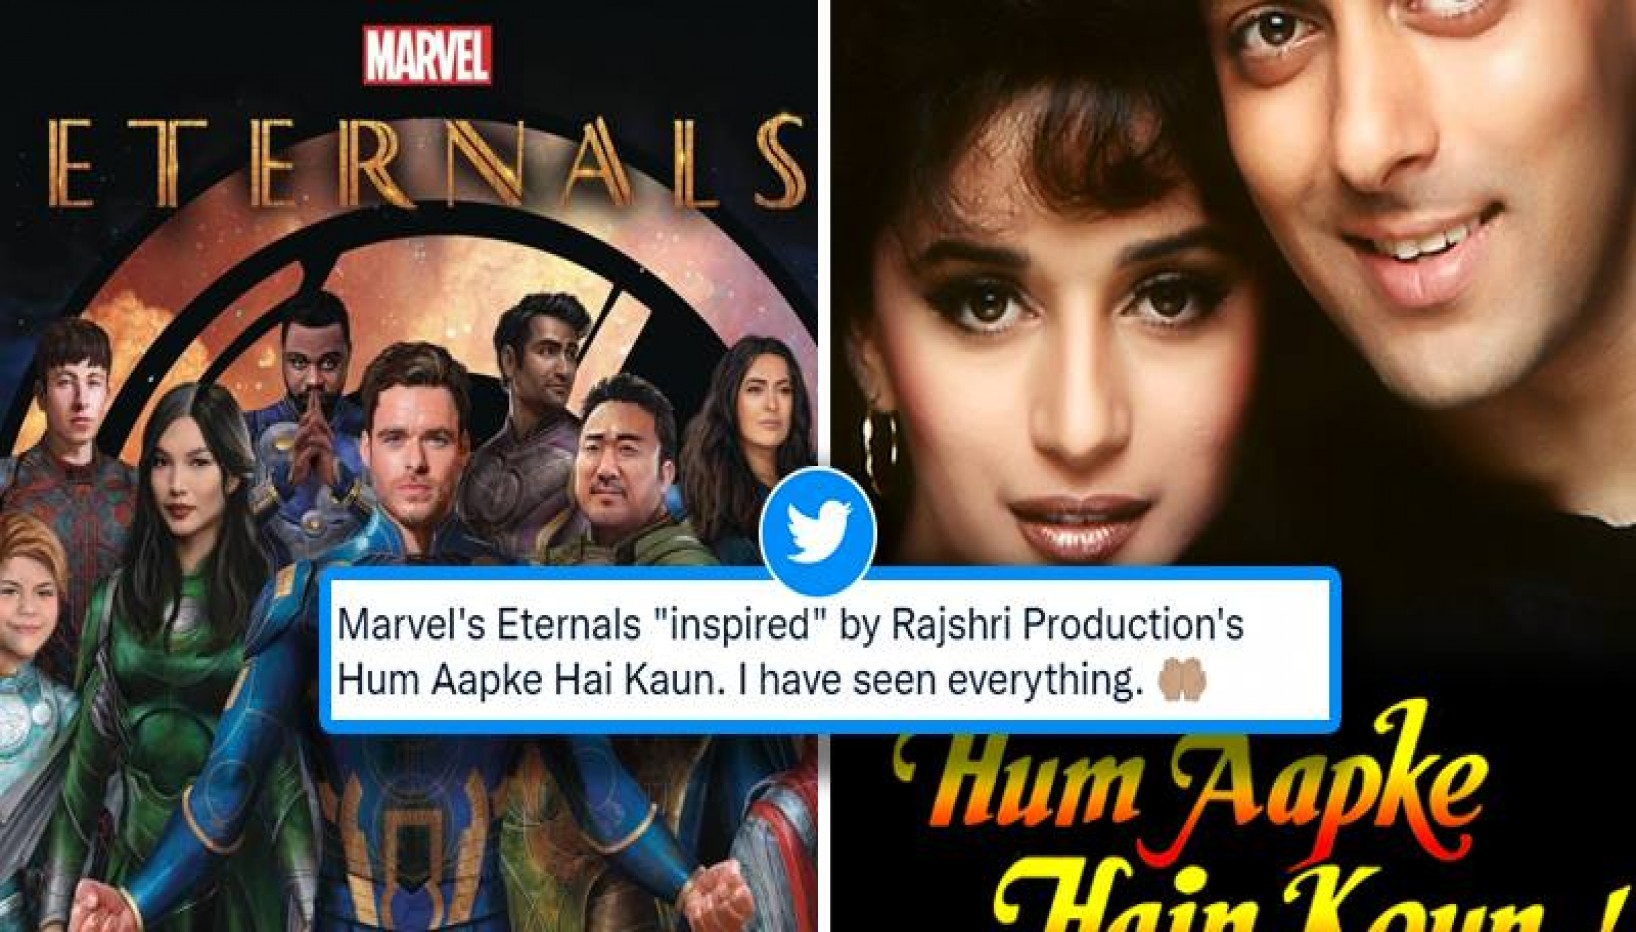 Is The Theme For The Eternals Inspired From Hum Aapkey Hai Kaun? Indian Twitter Thinks So